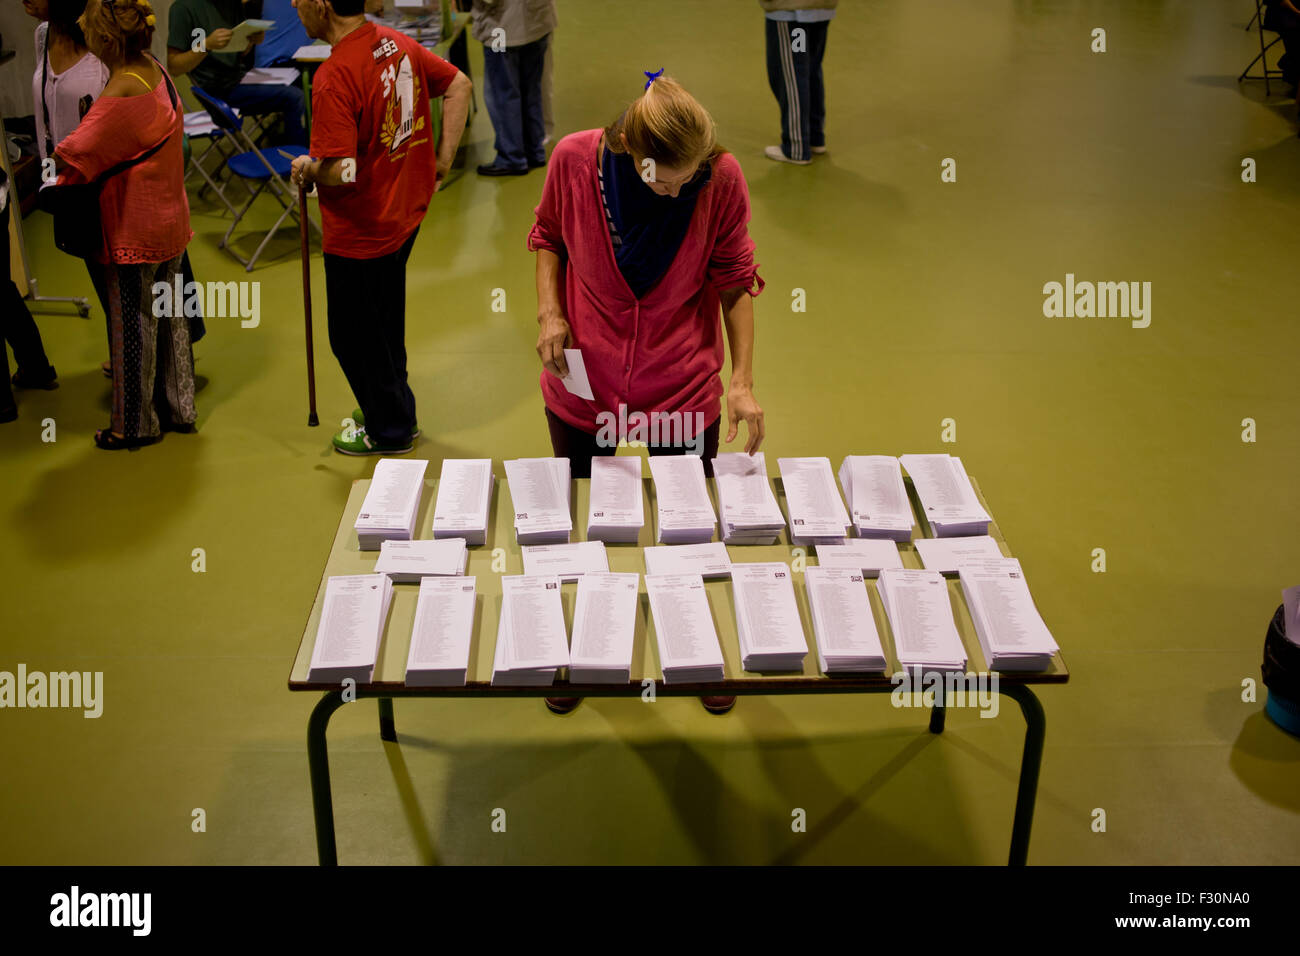 Barcelona, Spain. 27th Sep, 2015. A woman looks at ballots in a polling station in Barcelona on 27 Sept. 2015, Spain. - Stock Image